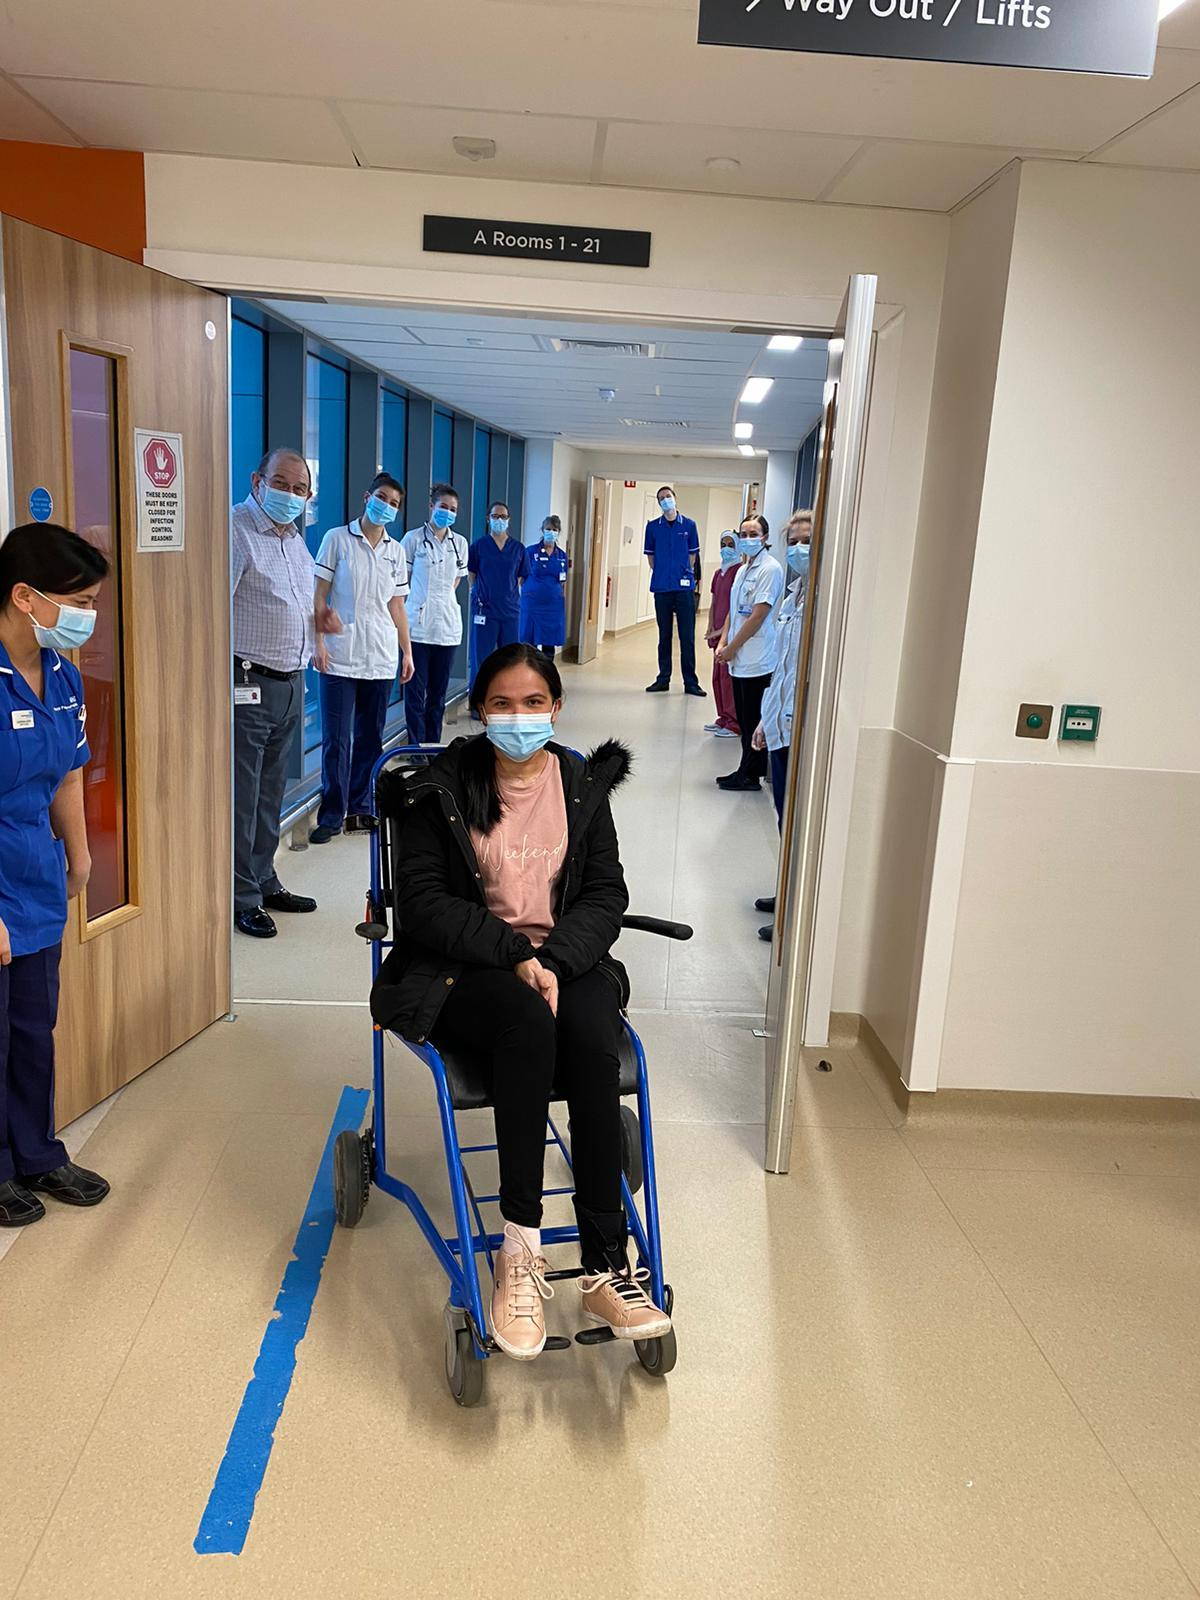 NHS Eva Gicain, 30, was discharged from hospital in January 2021 after fighting Covid-19. She has no memory of giving birth while seriously ill. (Royal Papworth Hospital/ PA)